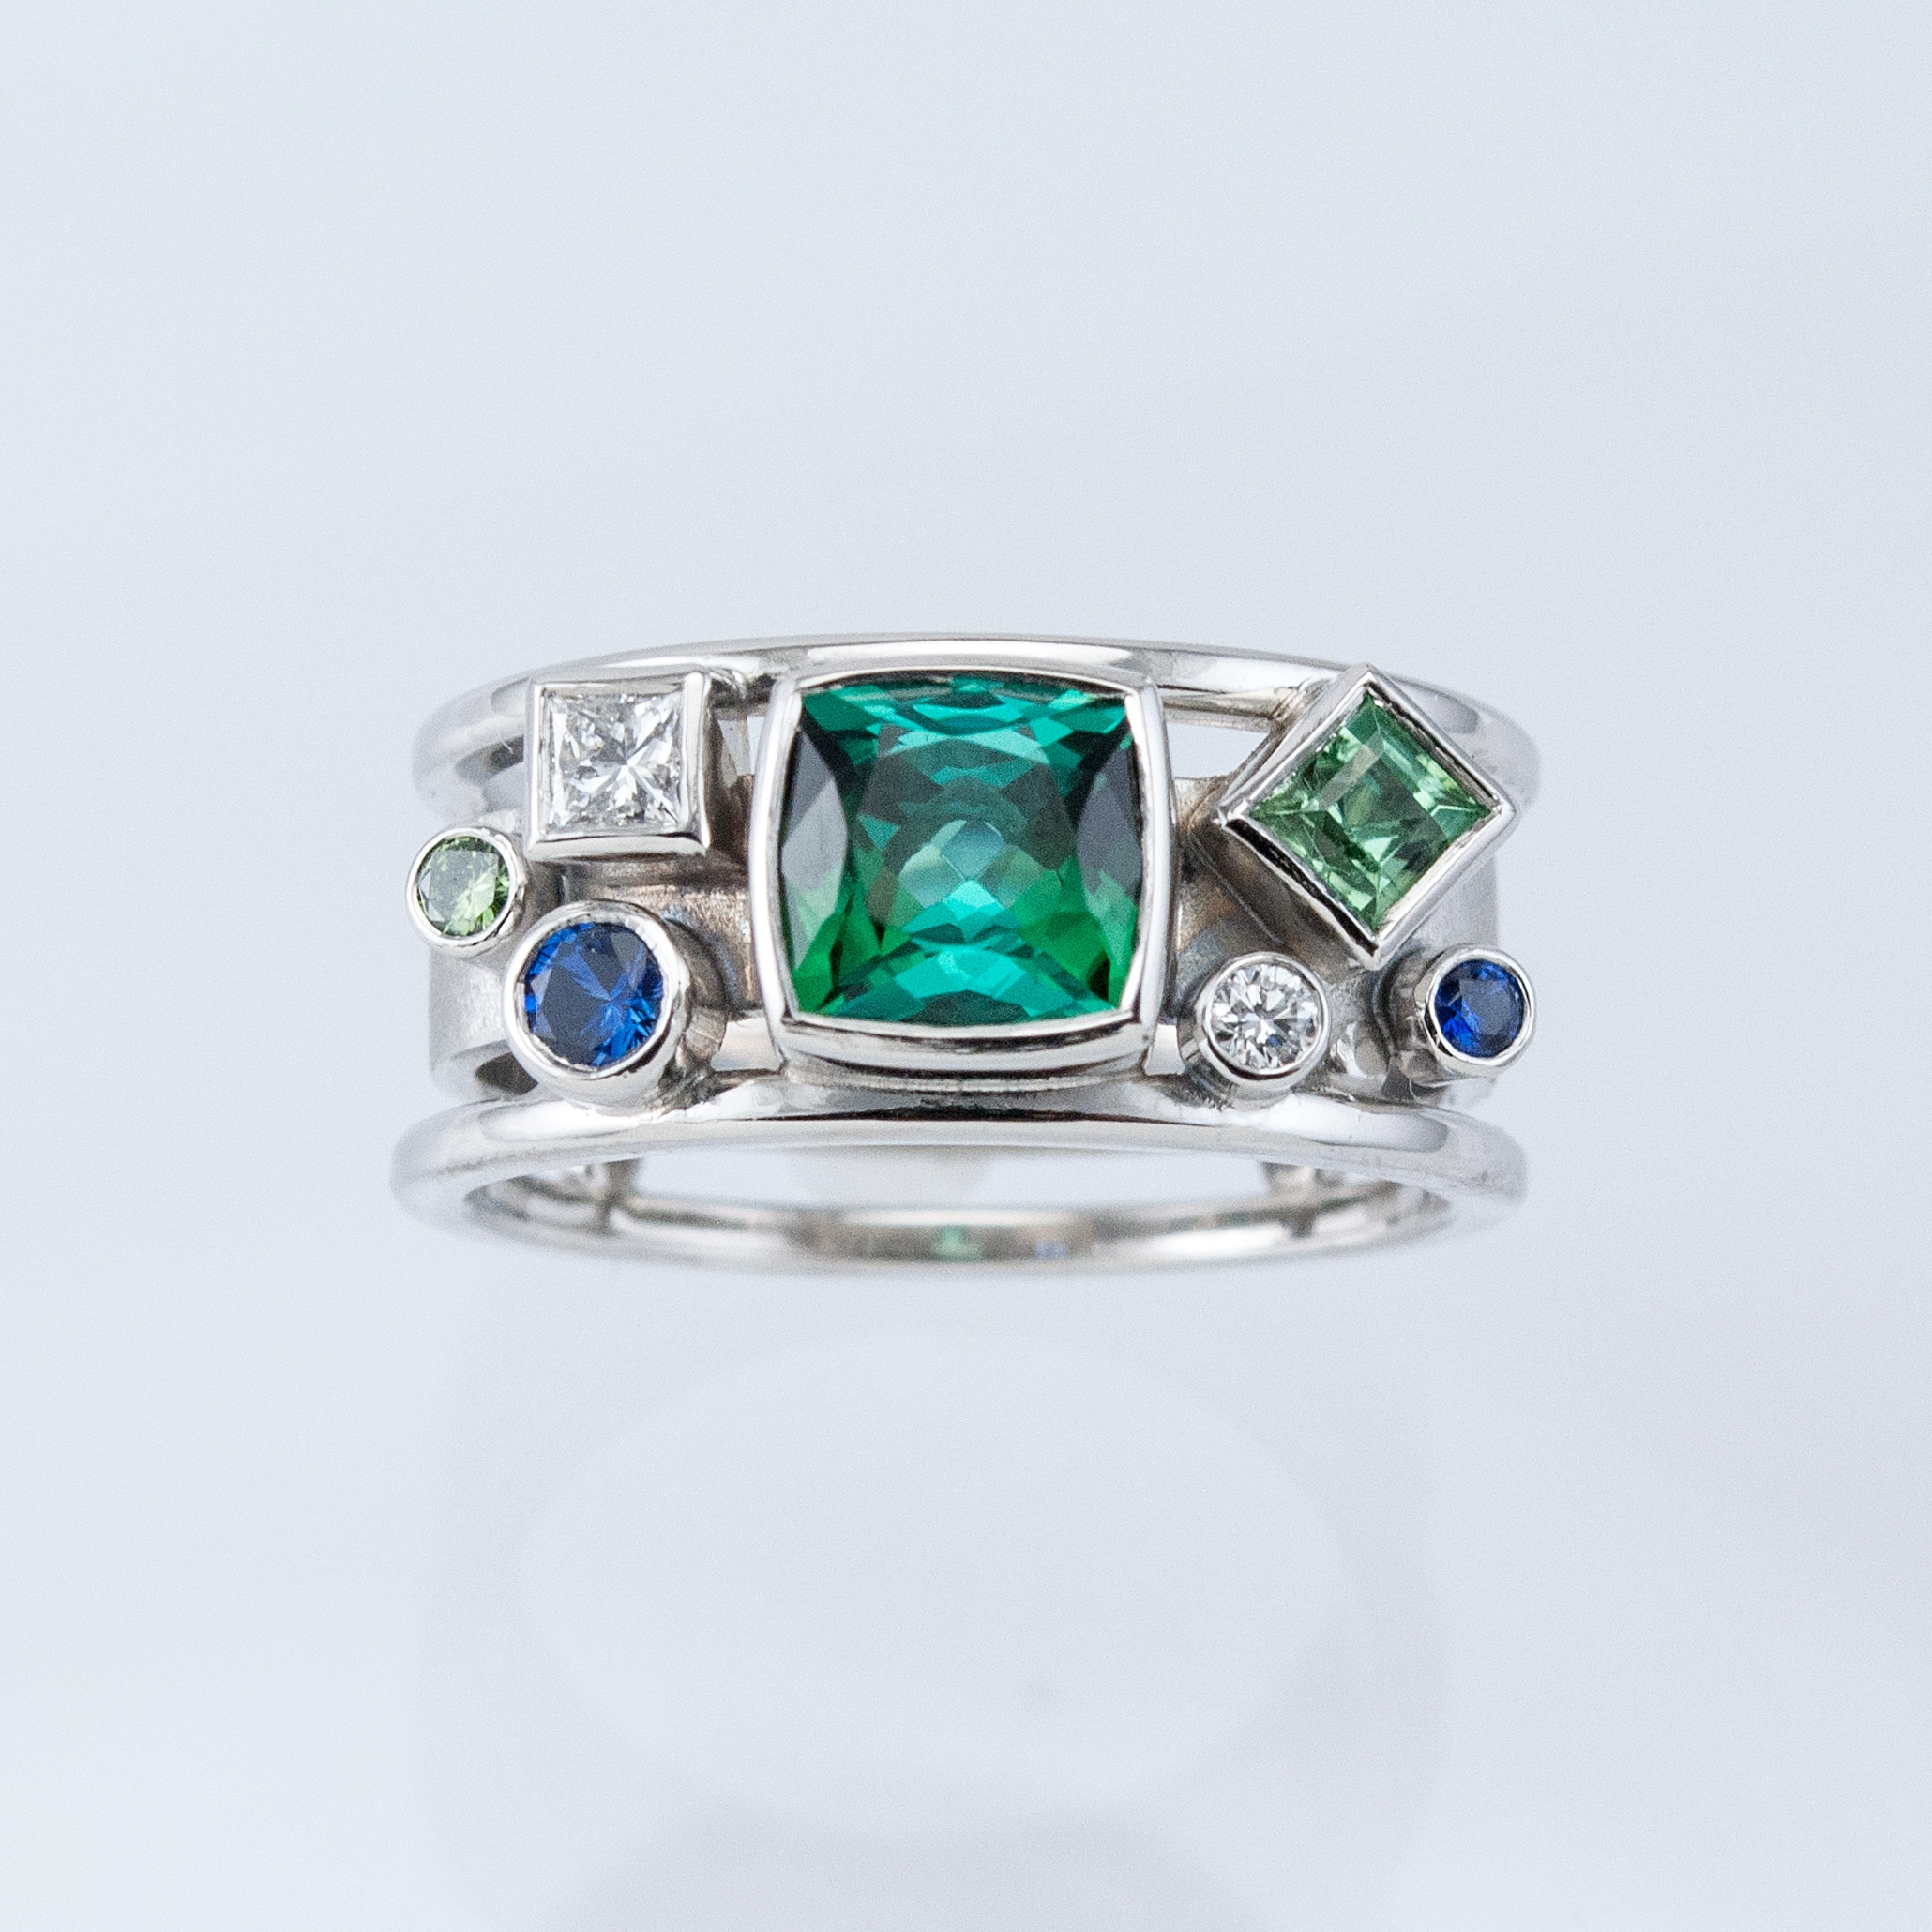 Platinum Memory Ring in Greens and Blues